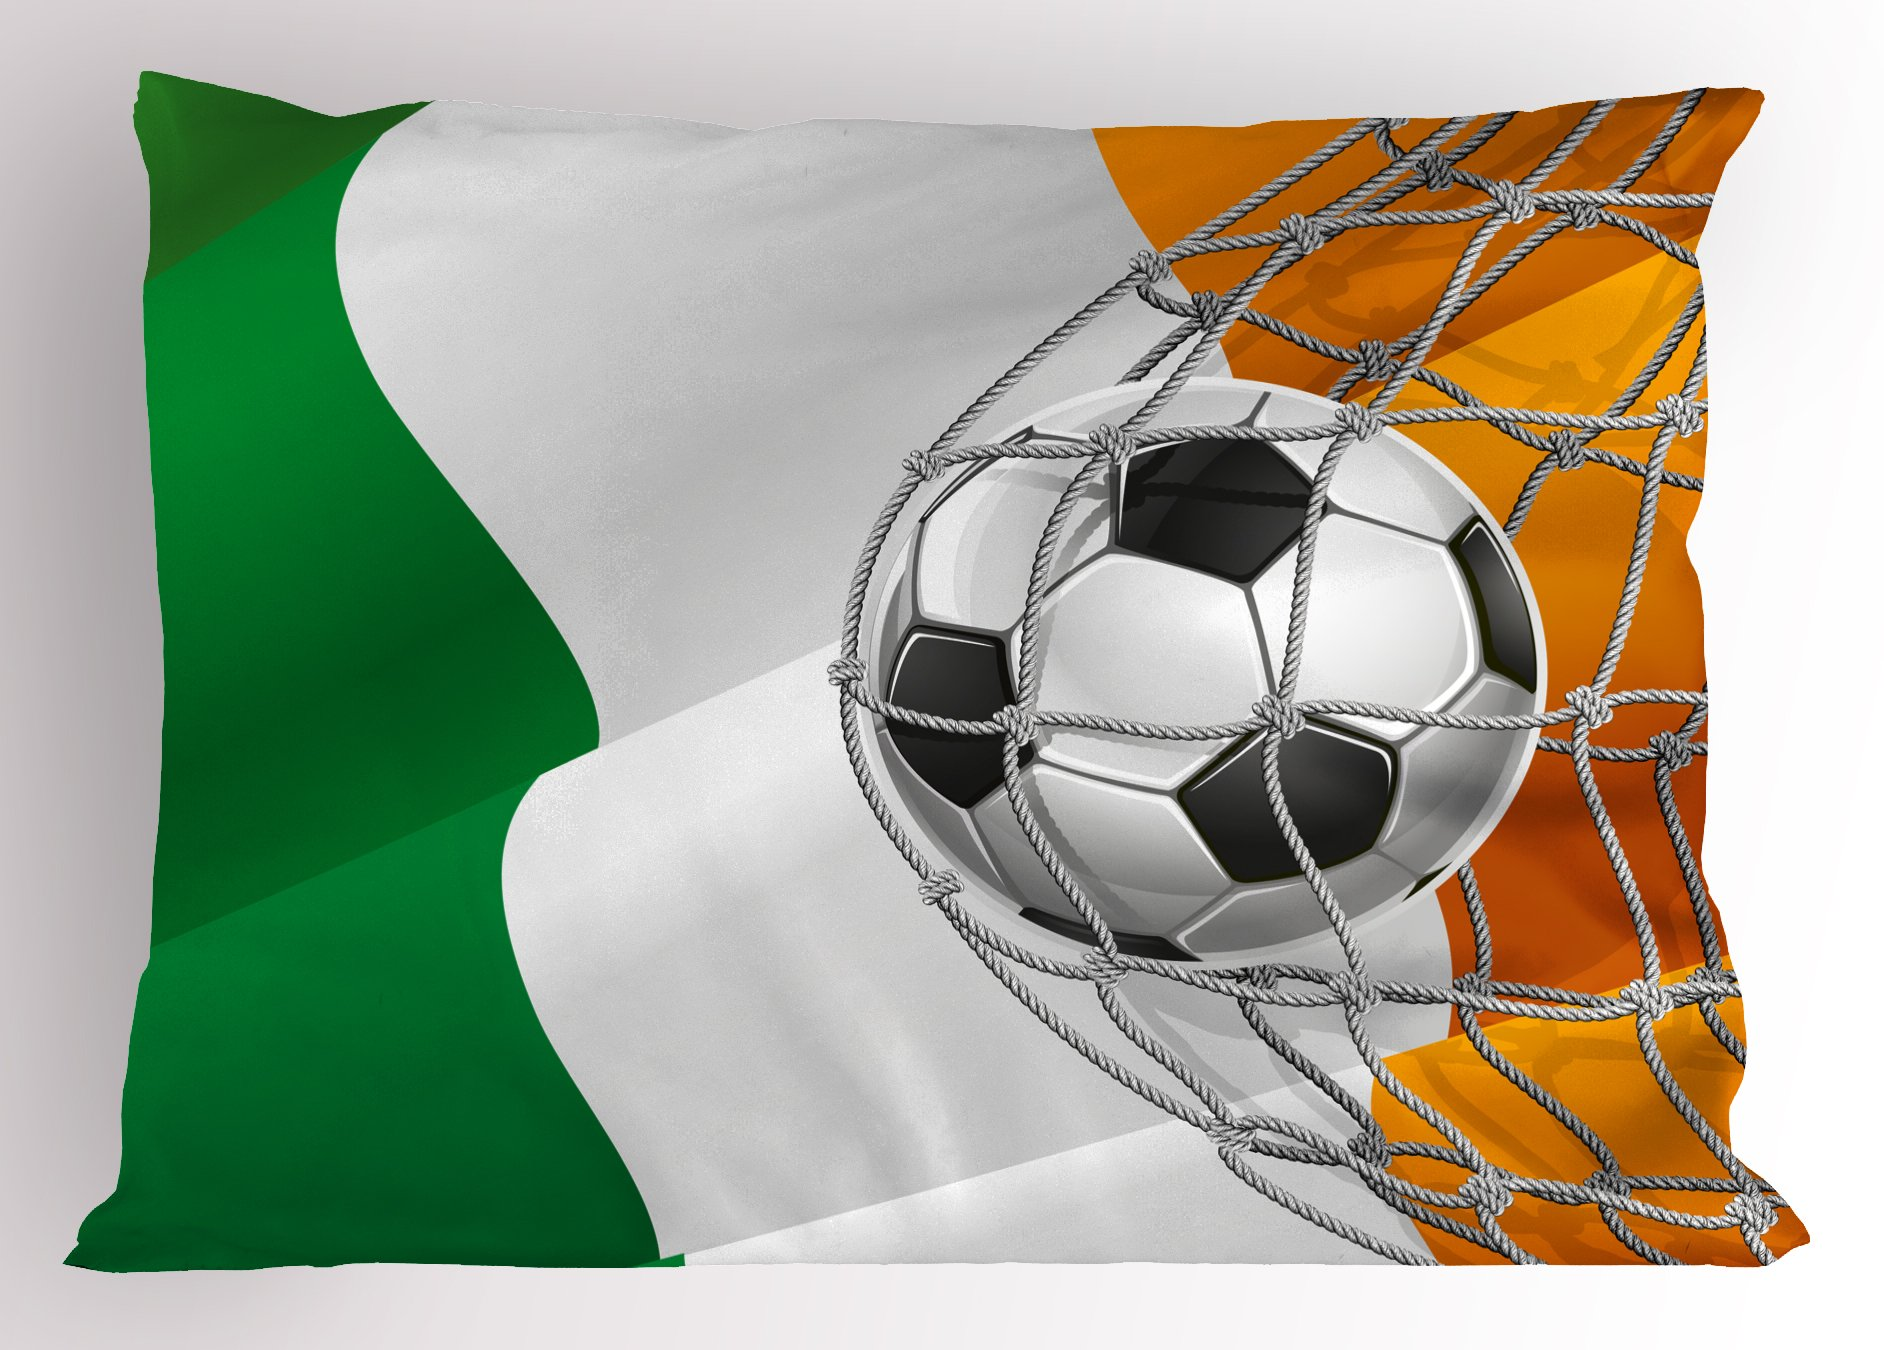 Ambesonne Irish Pillow Sham, Sports Theme Soccer Ball in a Net Game Goal with Ireland National Flag Victory Win, Decorative Standard King Size Printed Pillowcase, 36 X 20 inches, Multicolor